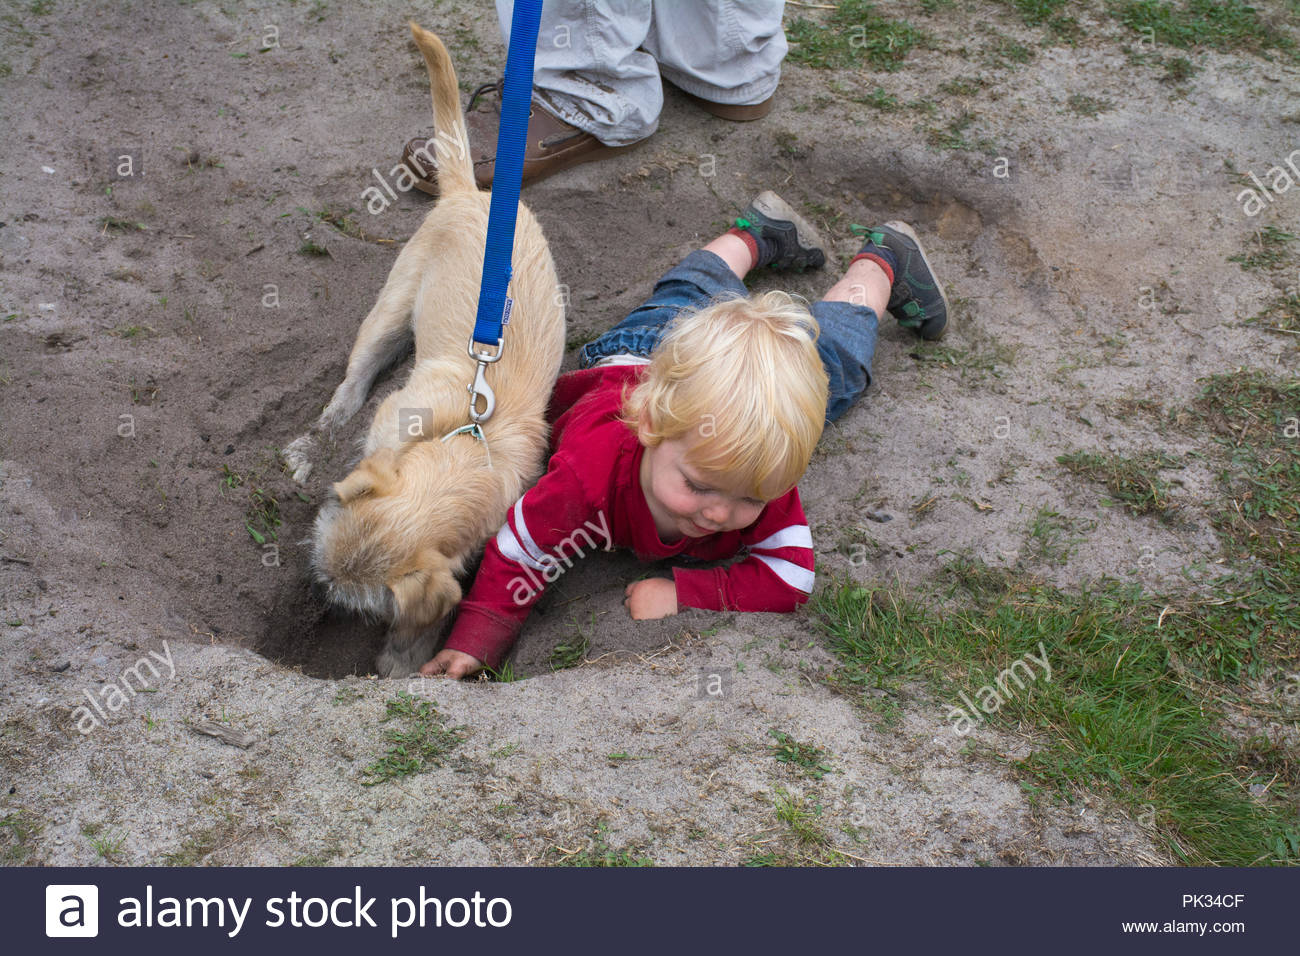 small-child-playing-in-the-dirt-with-a-pet-dog-digging-a-hole-concept-of-children-playing-outside-in-nature-healthy-childhood-natural-immunity-PK34CF.jpg